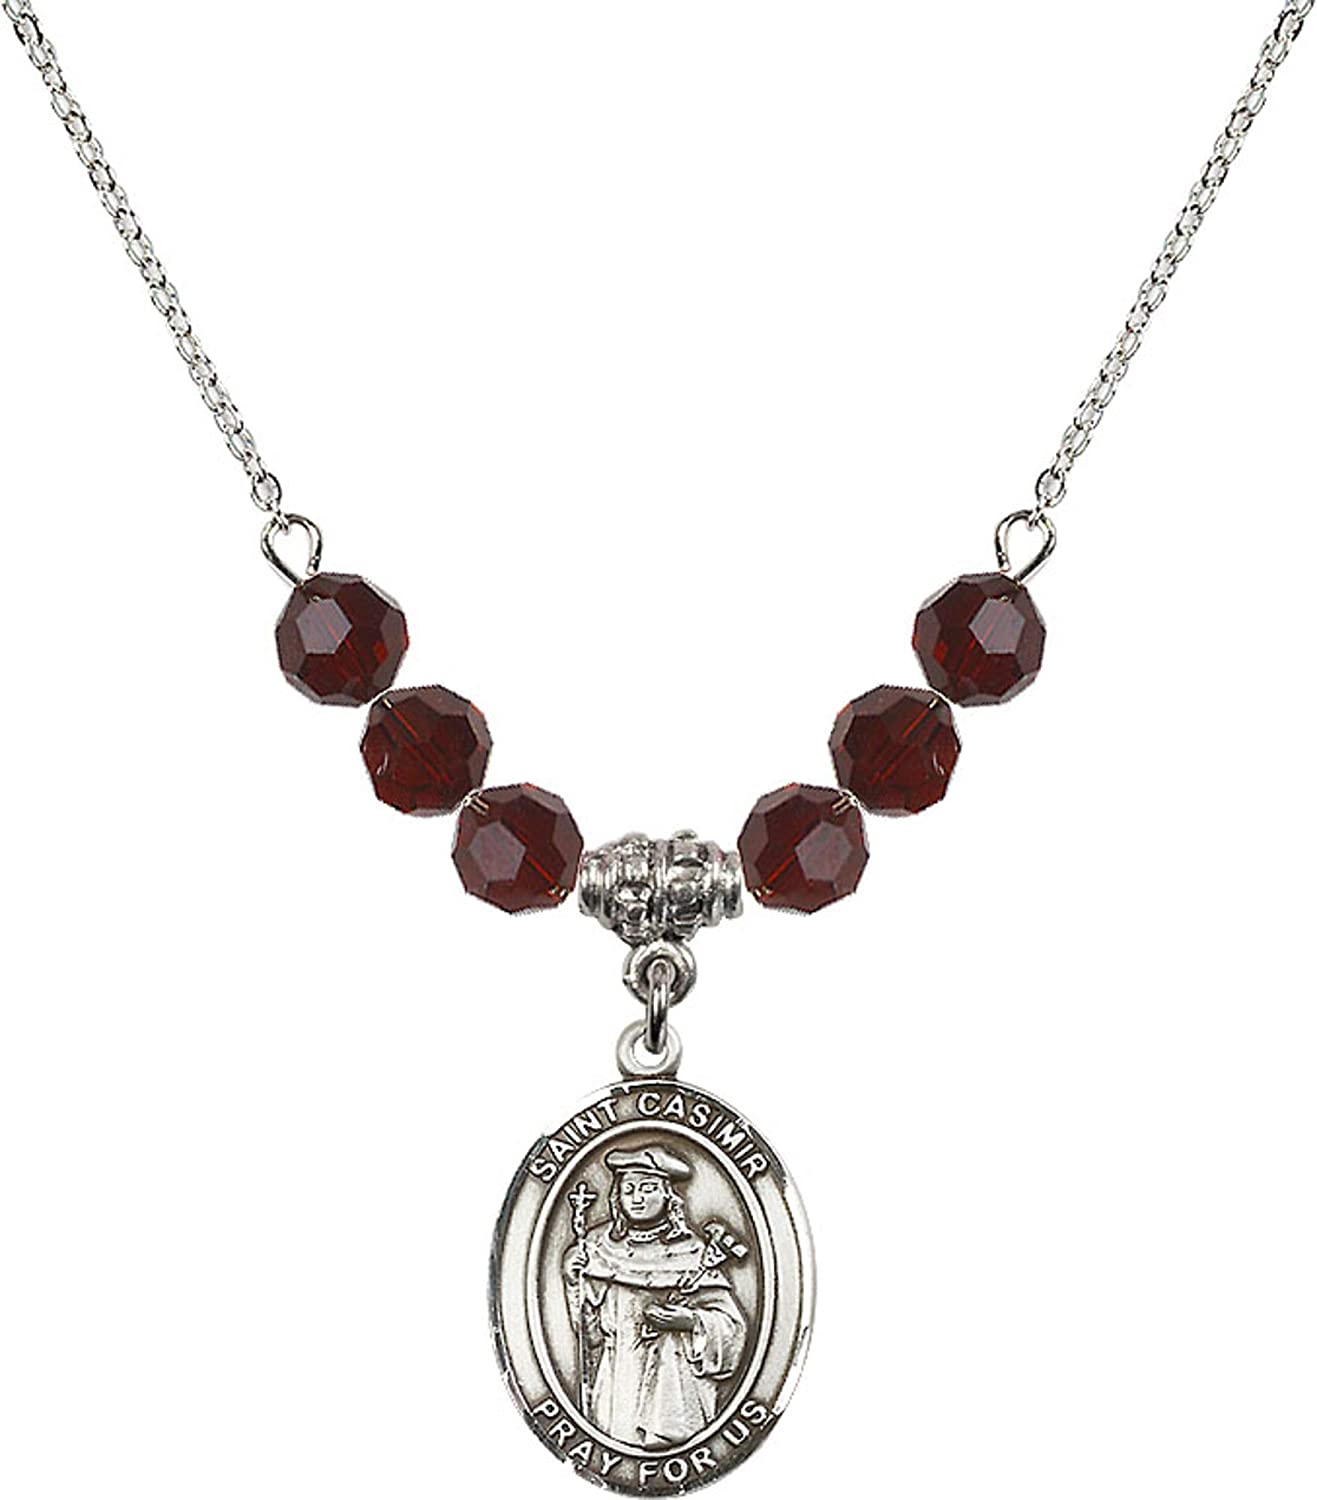 Bonyak Jewelry 18 Inch Rhodium Plated Necklace w// 6mm Red January Birth Month Stone Beads and Saint Casimir of Poland Charm